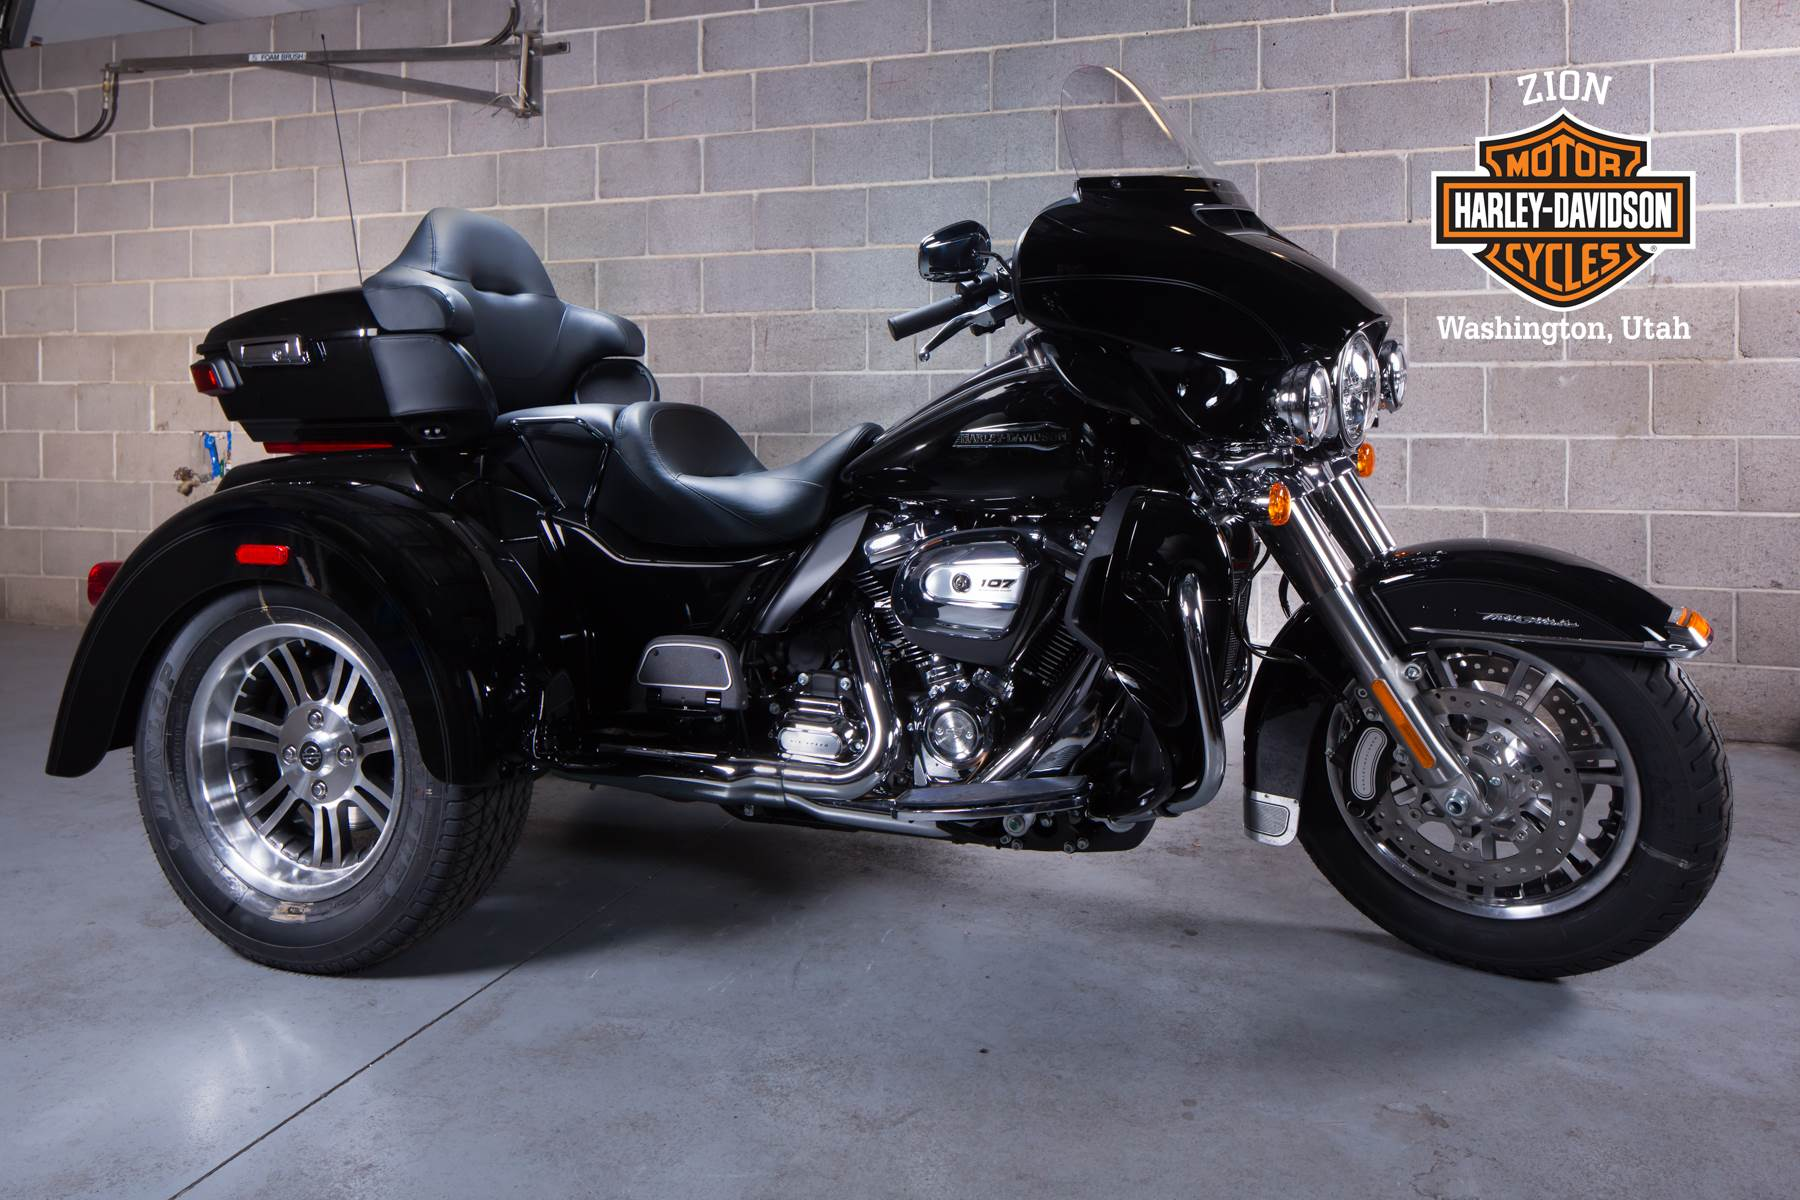 2018 Harley-Davidson Tri Glide Ultra for sale 20178